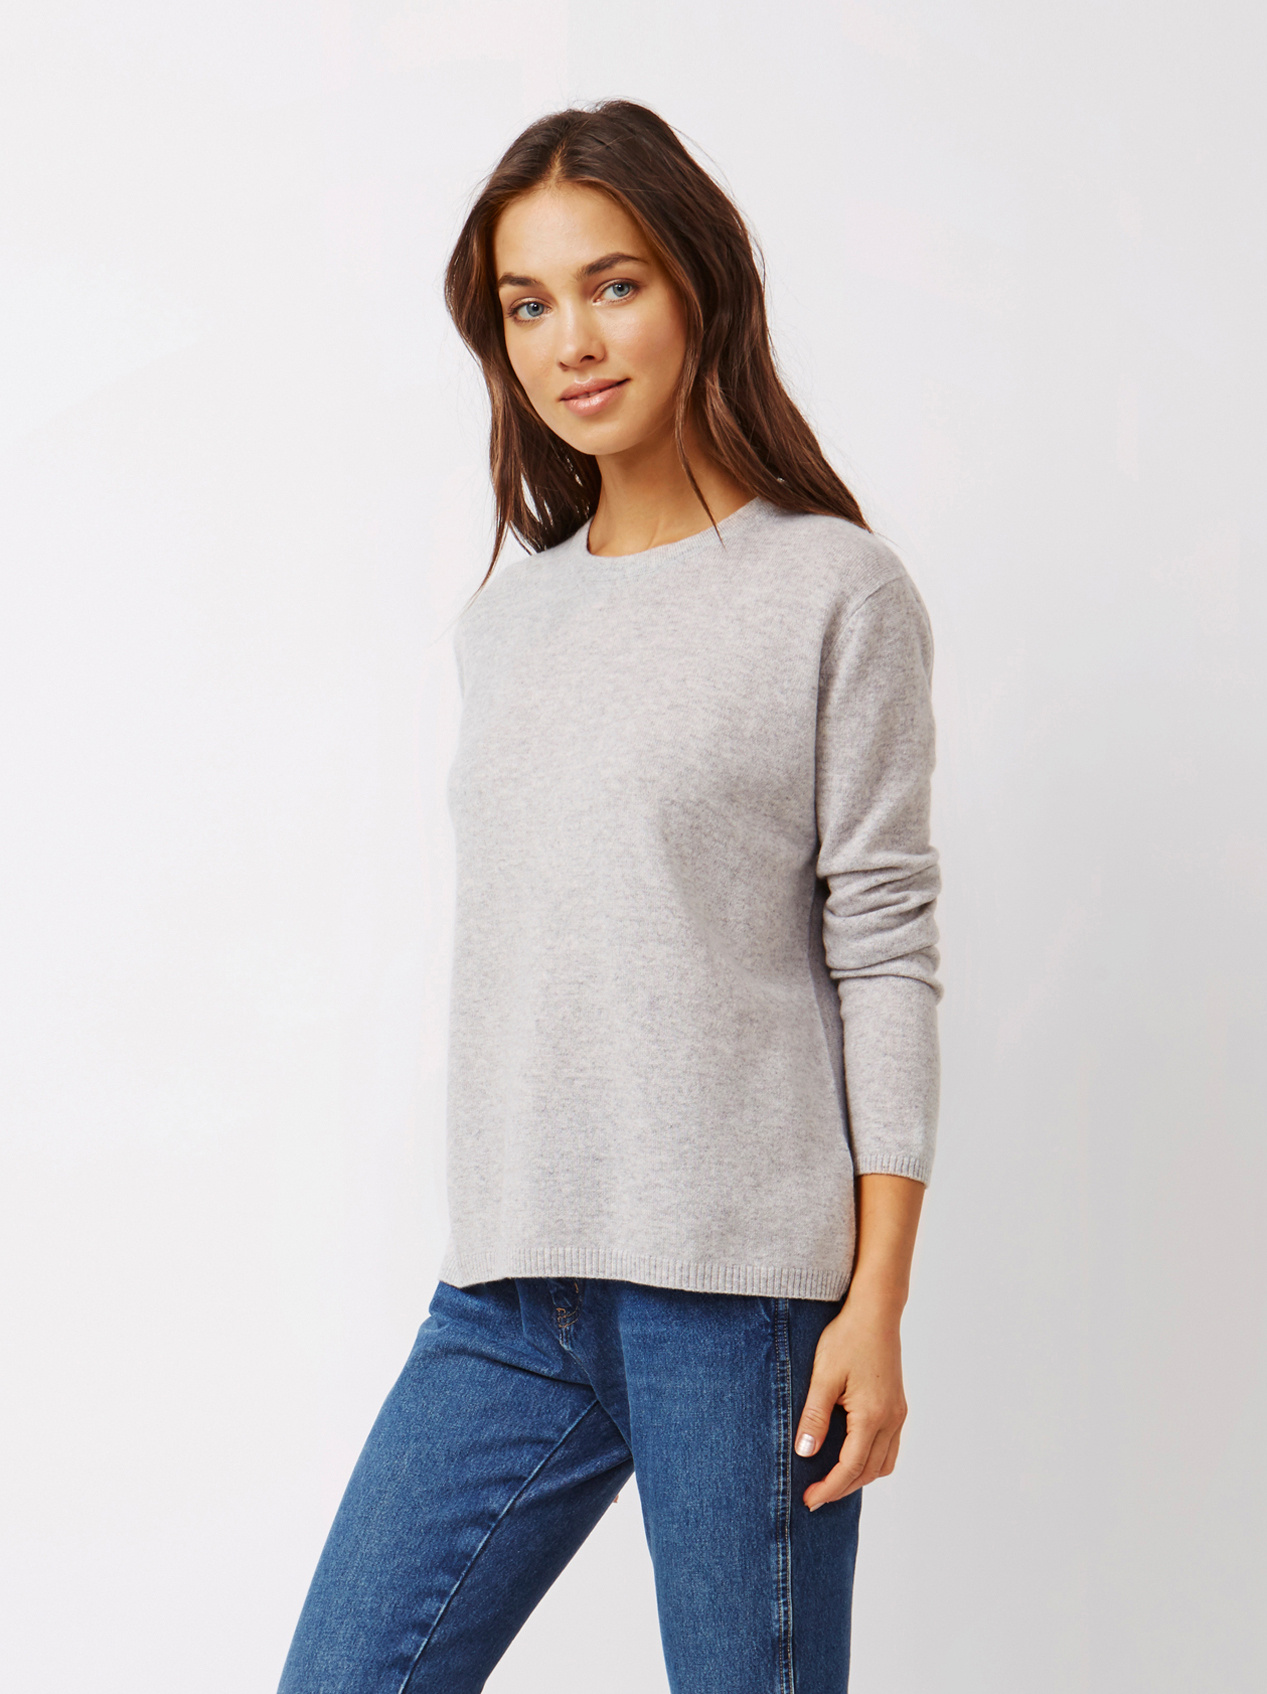 Soft Goat Women's Crossed Back Sweater Light Grey